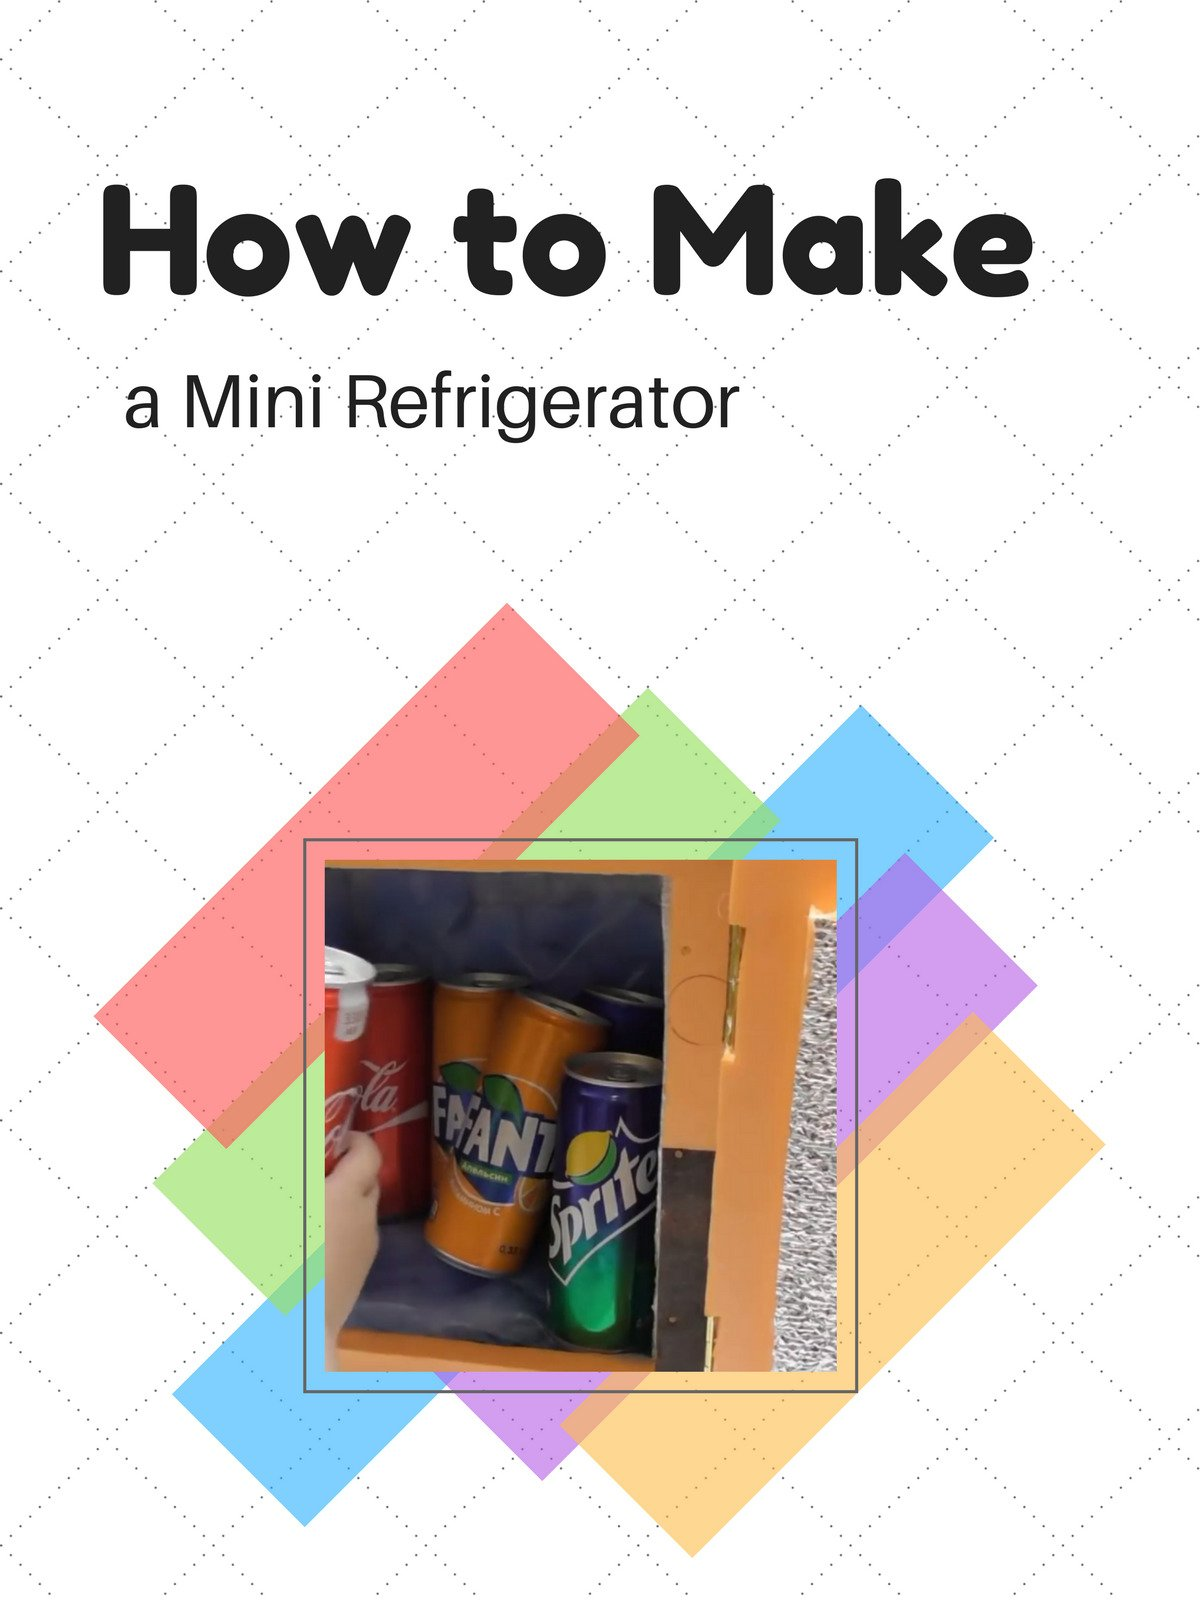 How to make a Mini Refrigerator